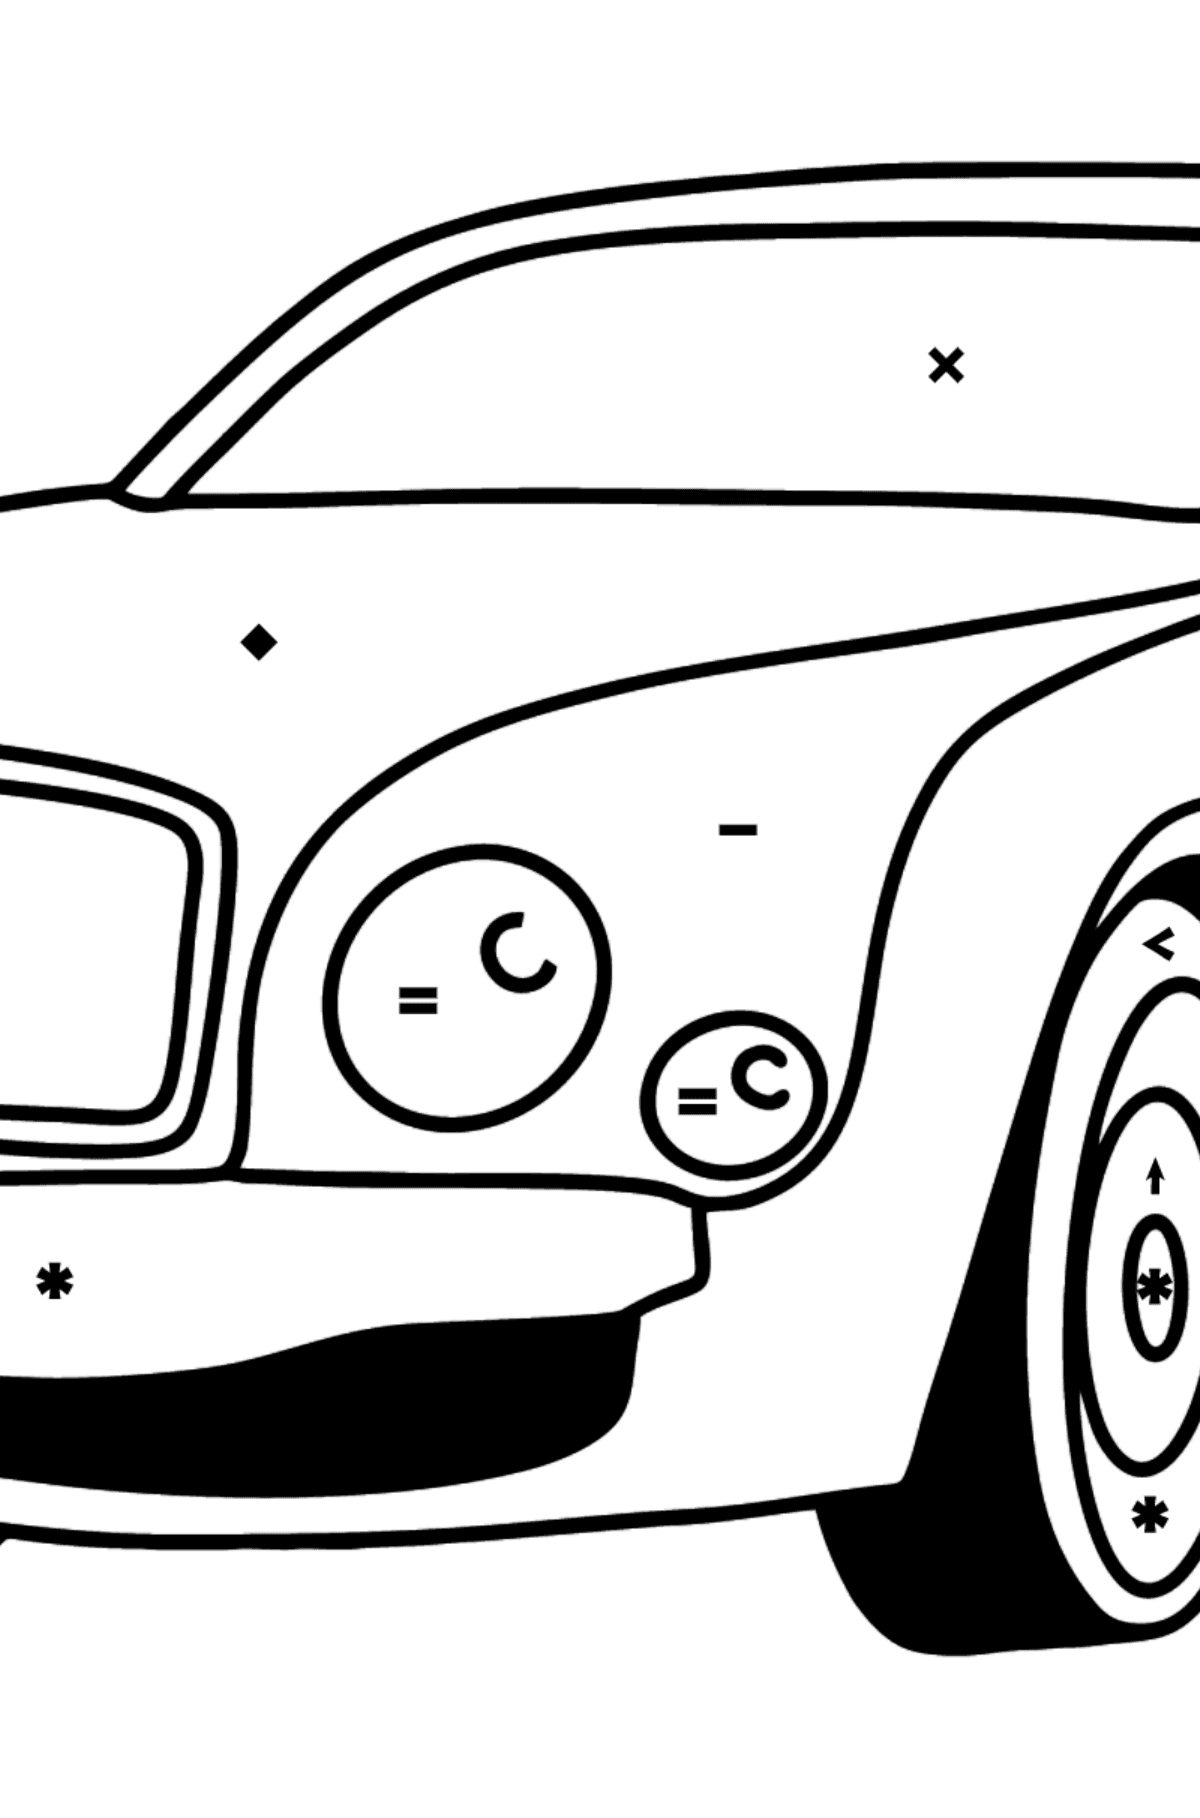 Bentley Mulsanne Car Coloring Page - Coloring by Symbols for Kids